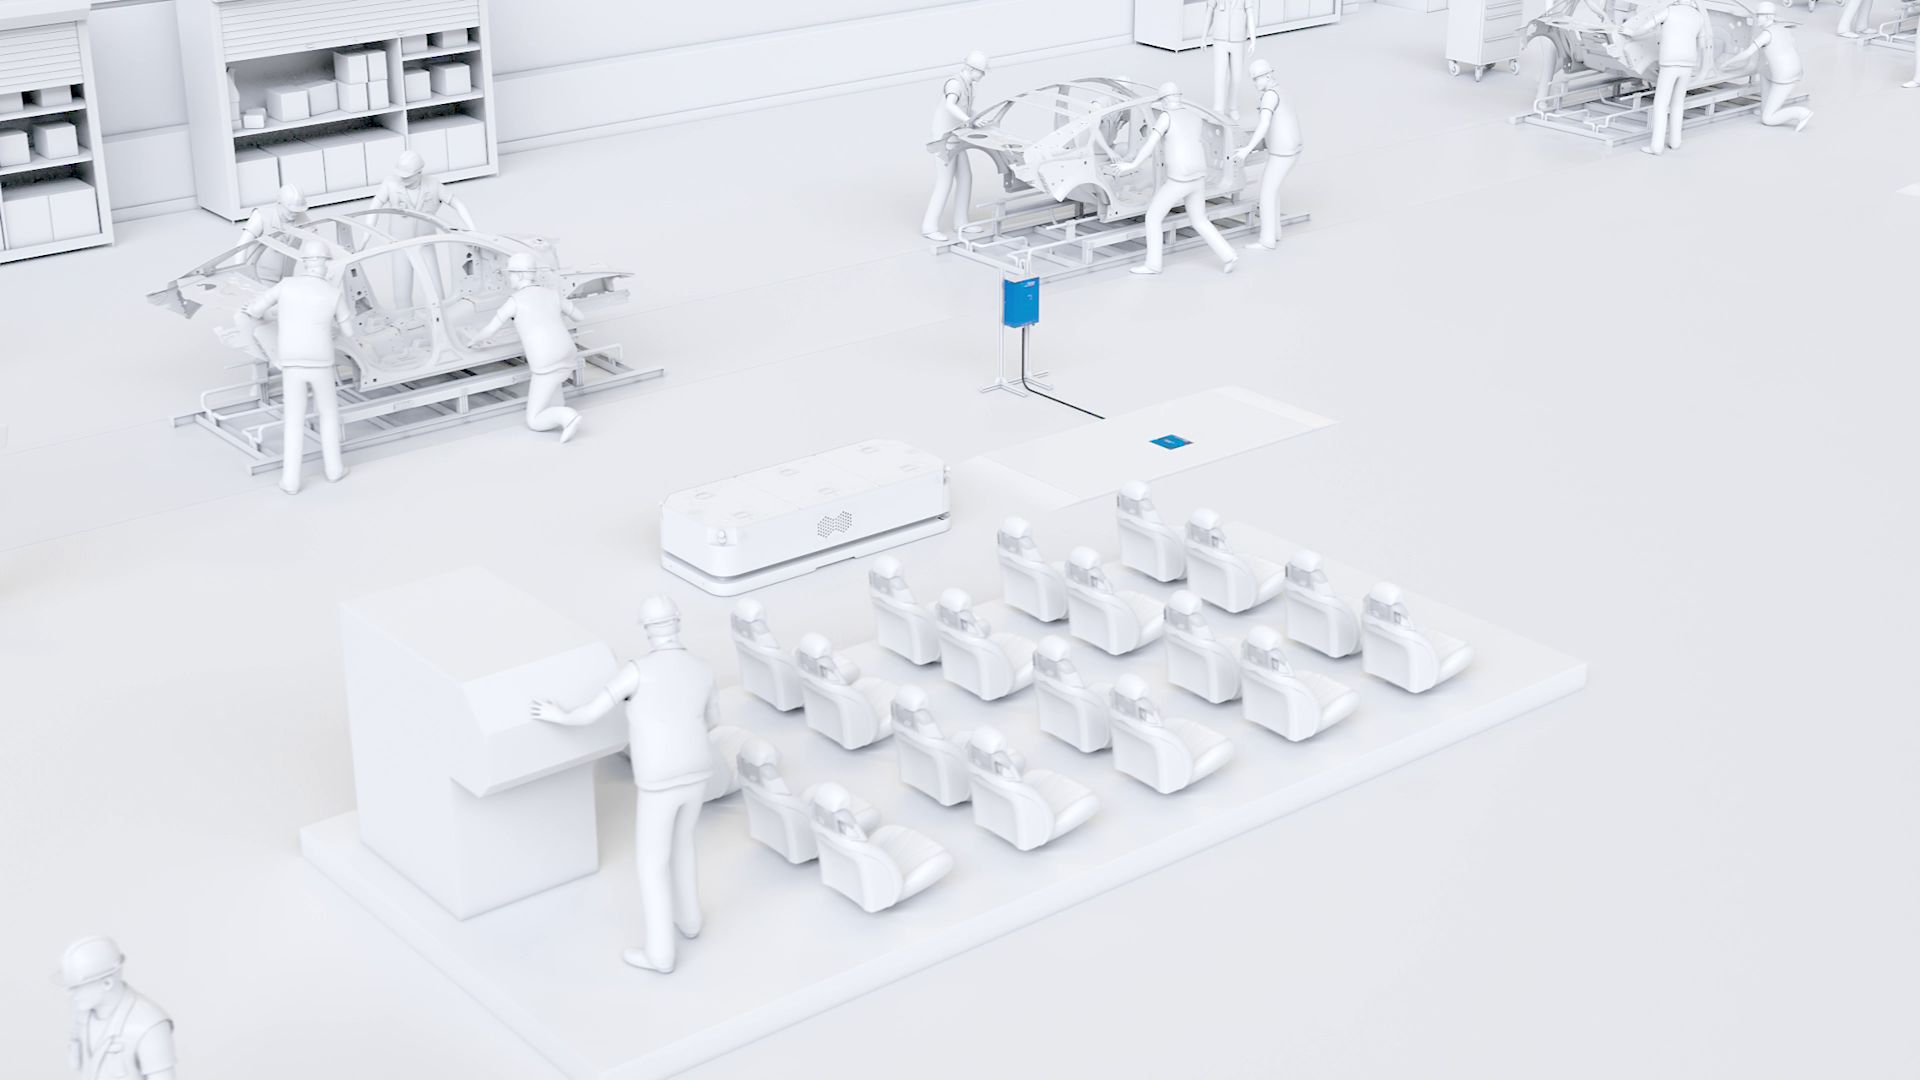 induktives laden fts in der produktion - wireless charging amr in the production